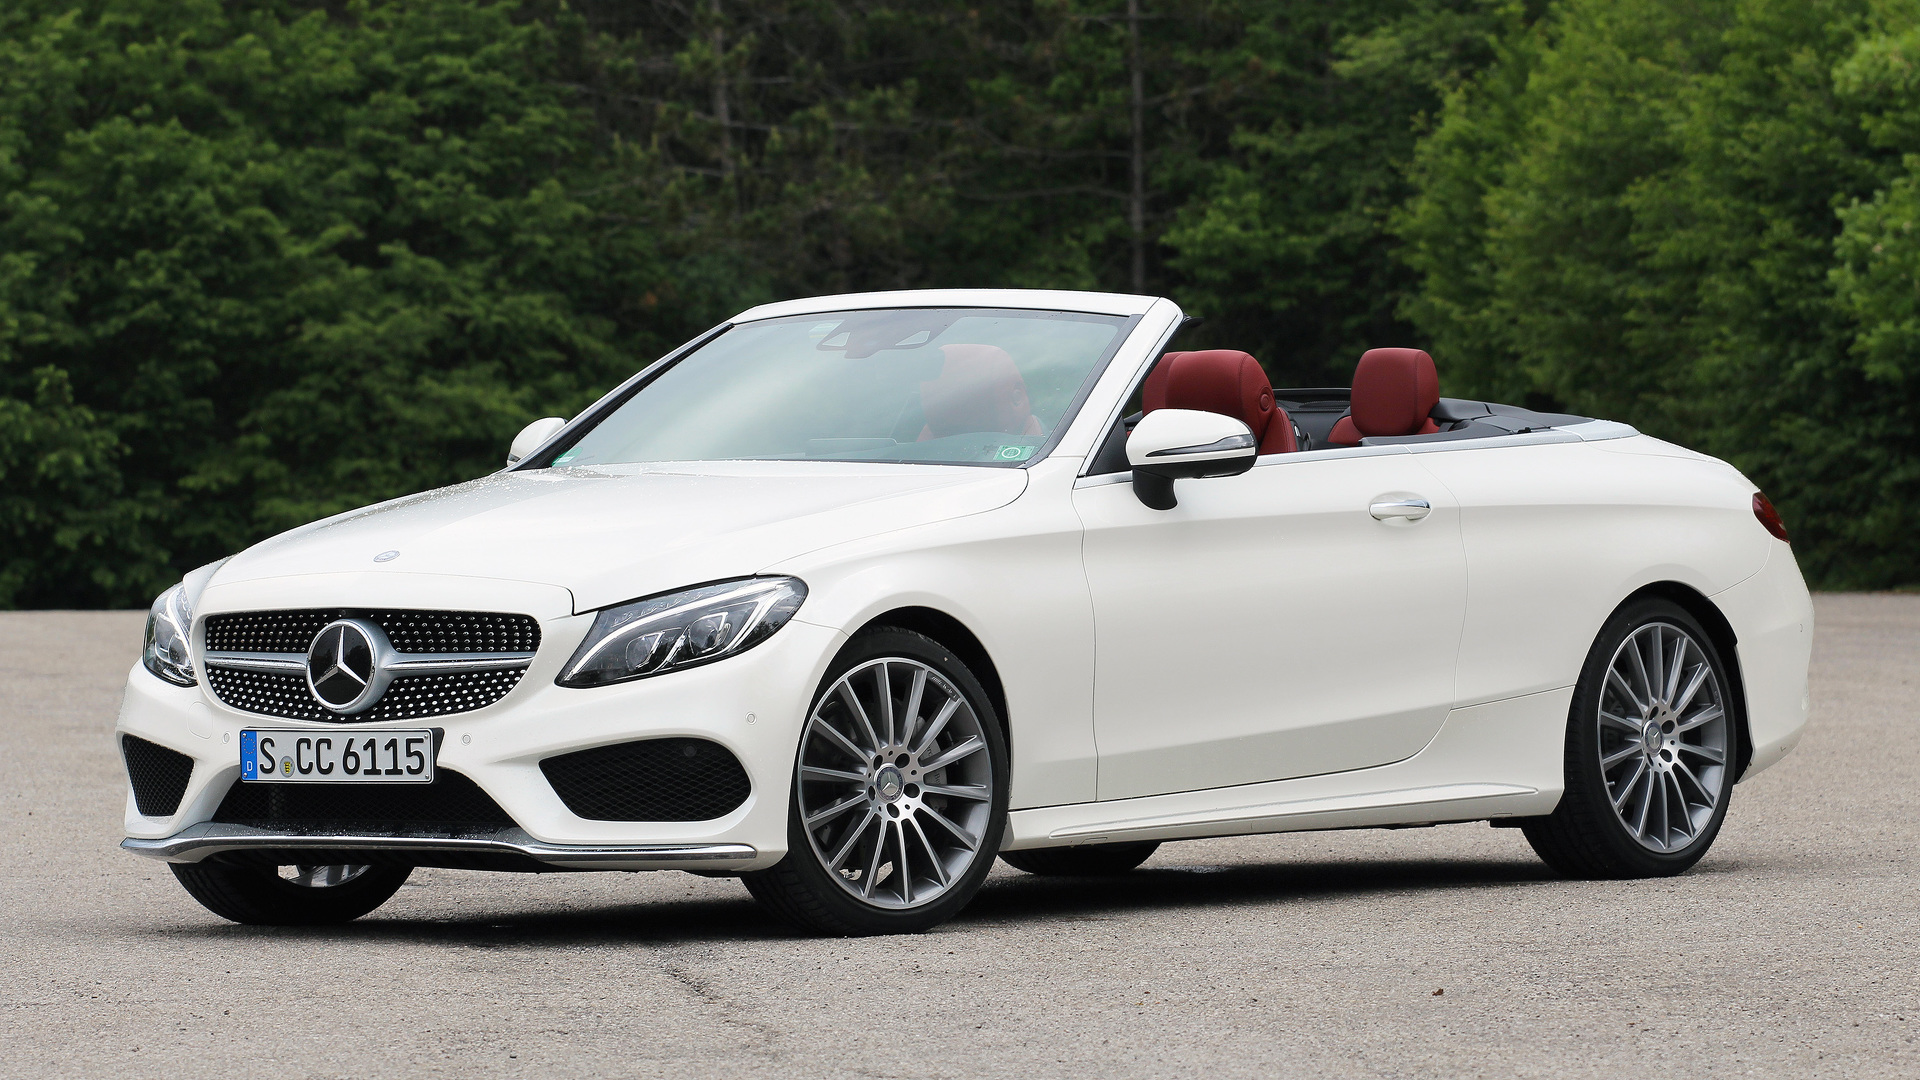 Mercedes C Class For Sale >> First Drive: 2017 Mercedes-Benz C300 Cabriolet